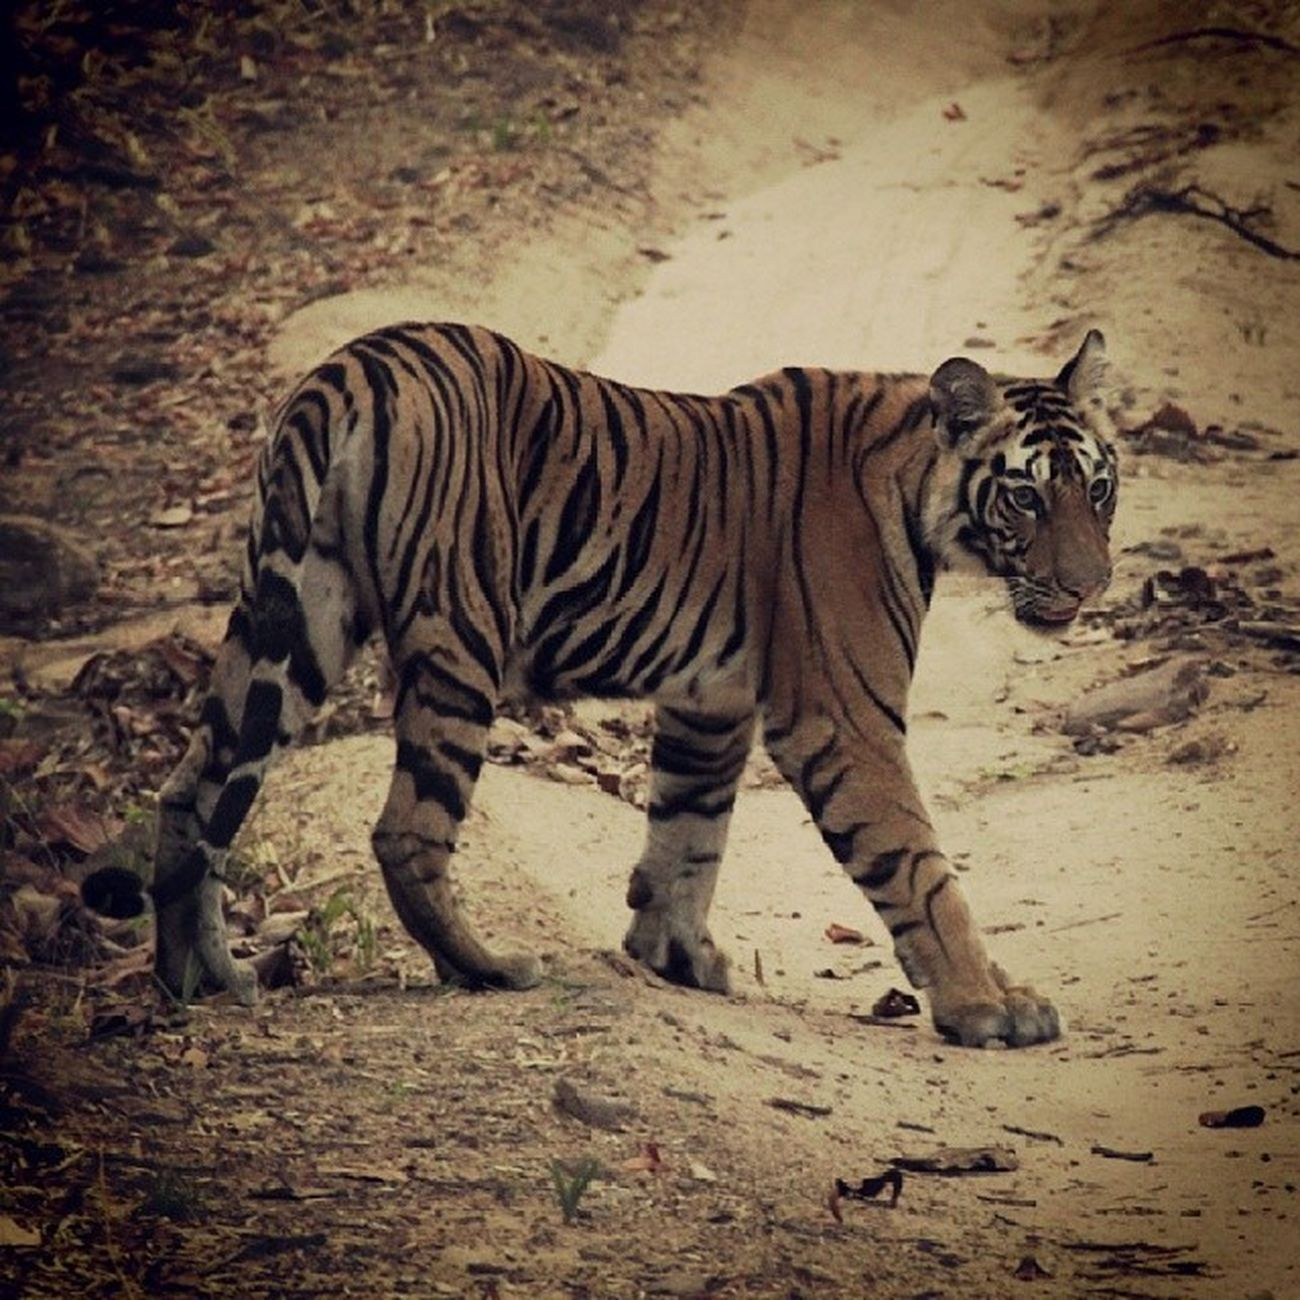 Bandhavgarh Nationalpark Wildlife Wildlifephotography india nature naturehippys wild bengaltiger incredibleindia instawild instagram